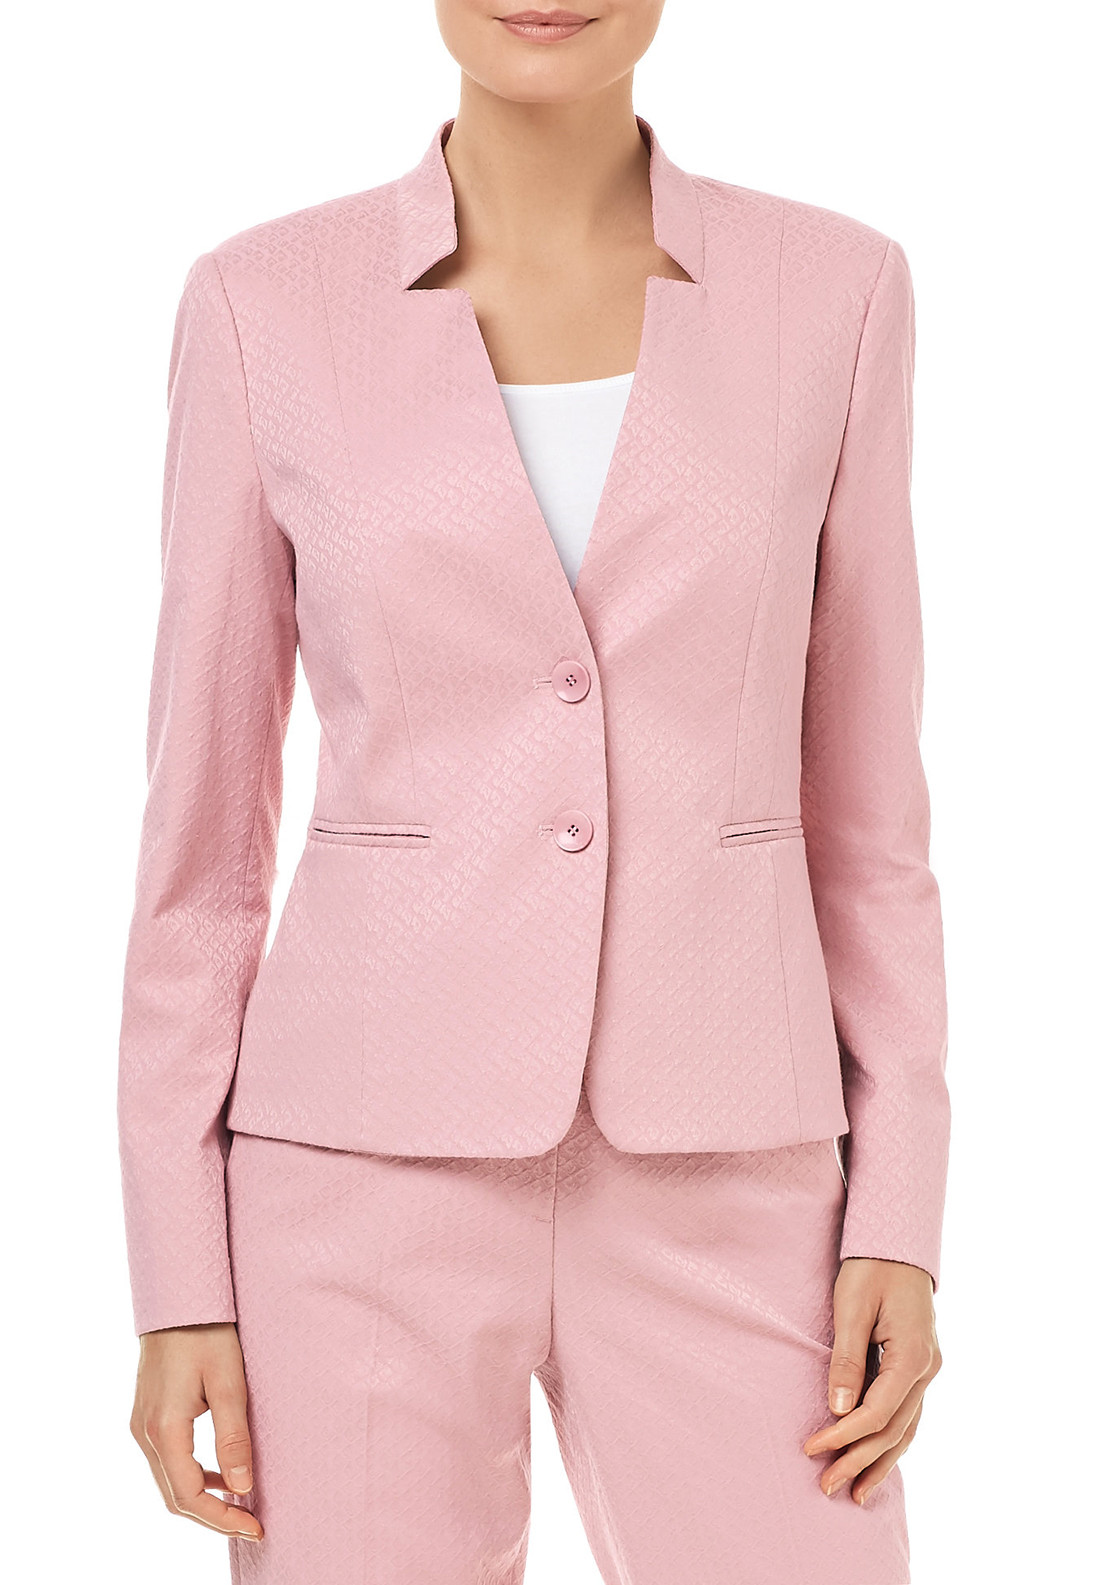 Gerry Weber Embossed Diamond Print Blazer Jacket, Pink